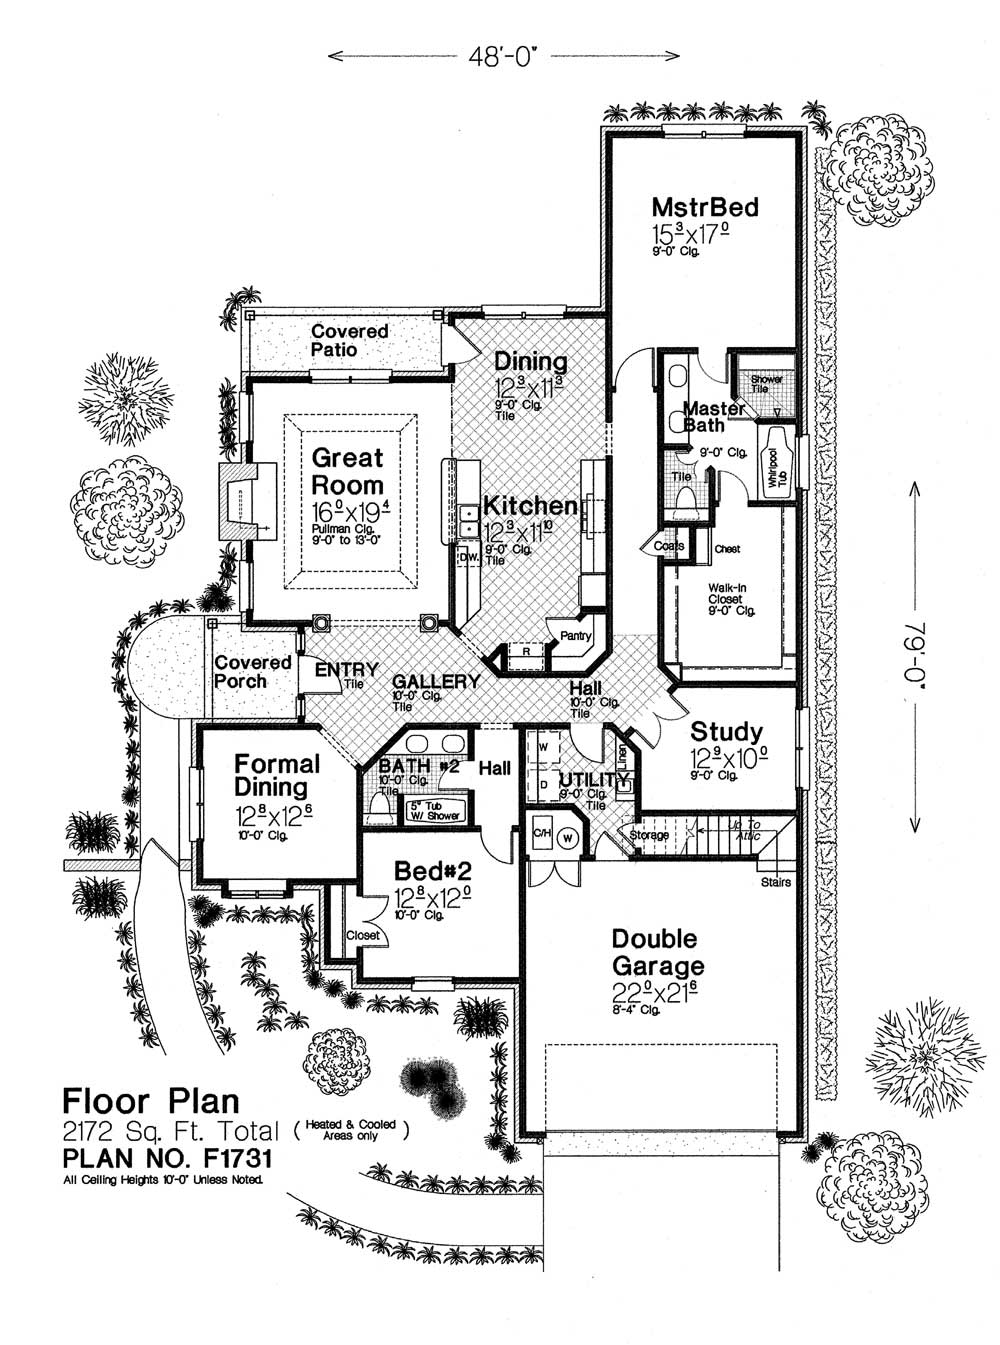 F1731 fillmore chambers design group Fillmore design floor plans